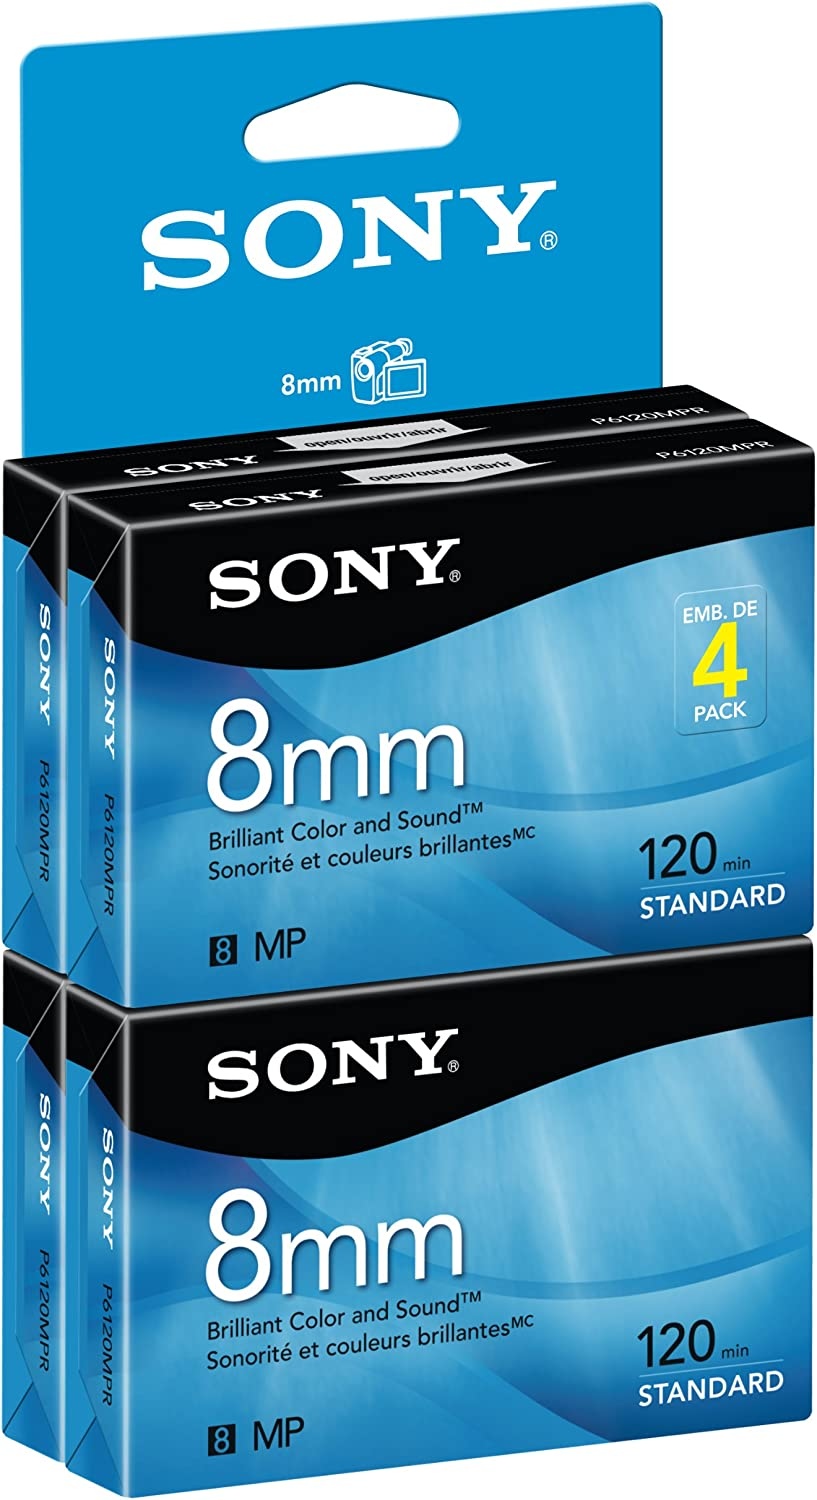 Sony 8mm 120-minute 4 pack (Discontinued by Manufacturer)